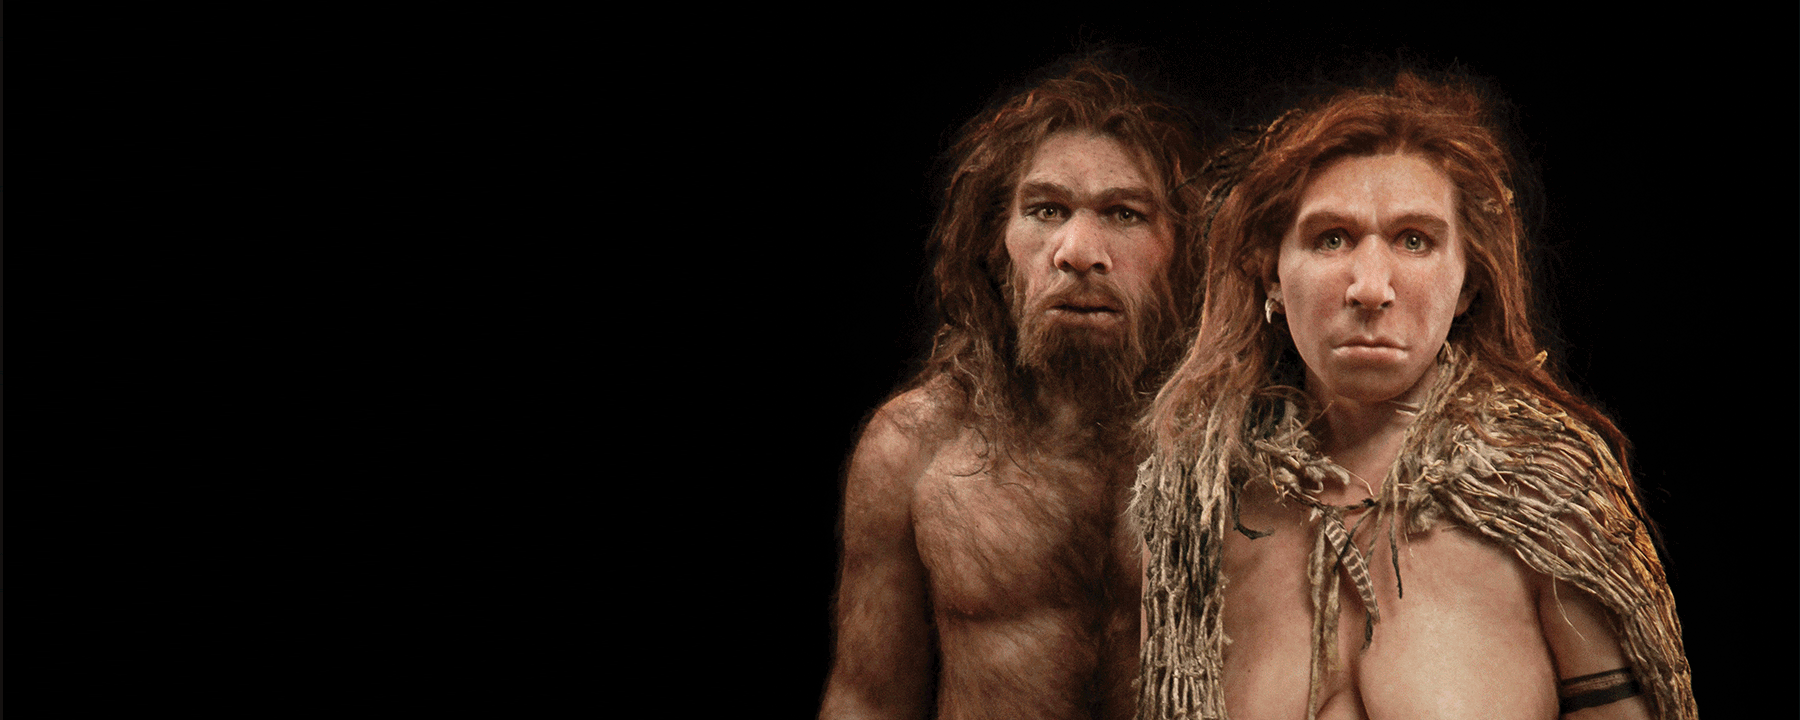 Neanderthal DNA in Modern Human Genomes Is Not Silent